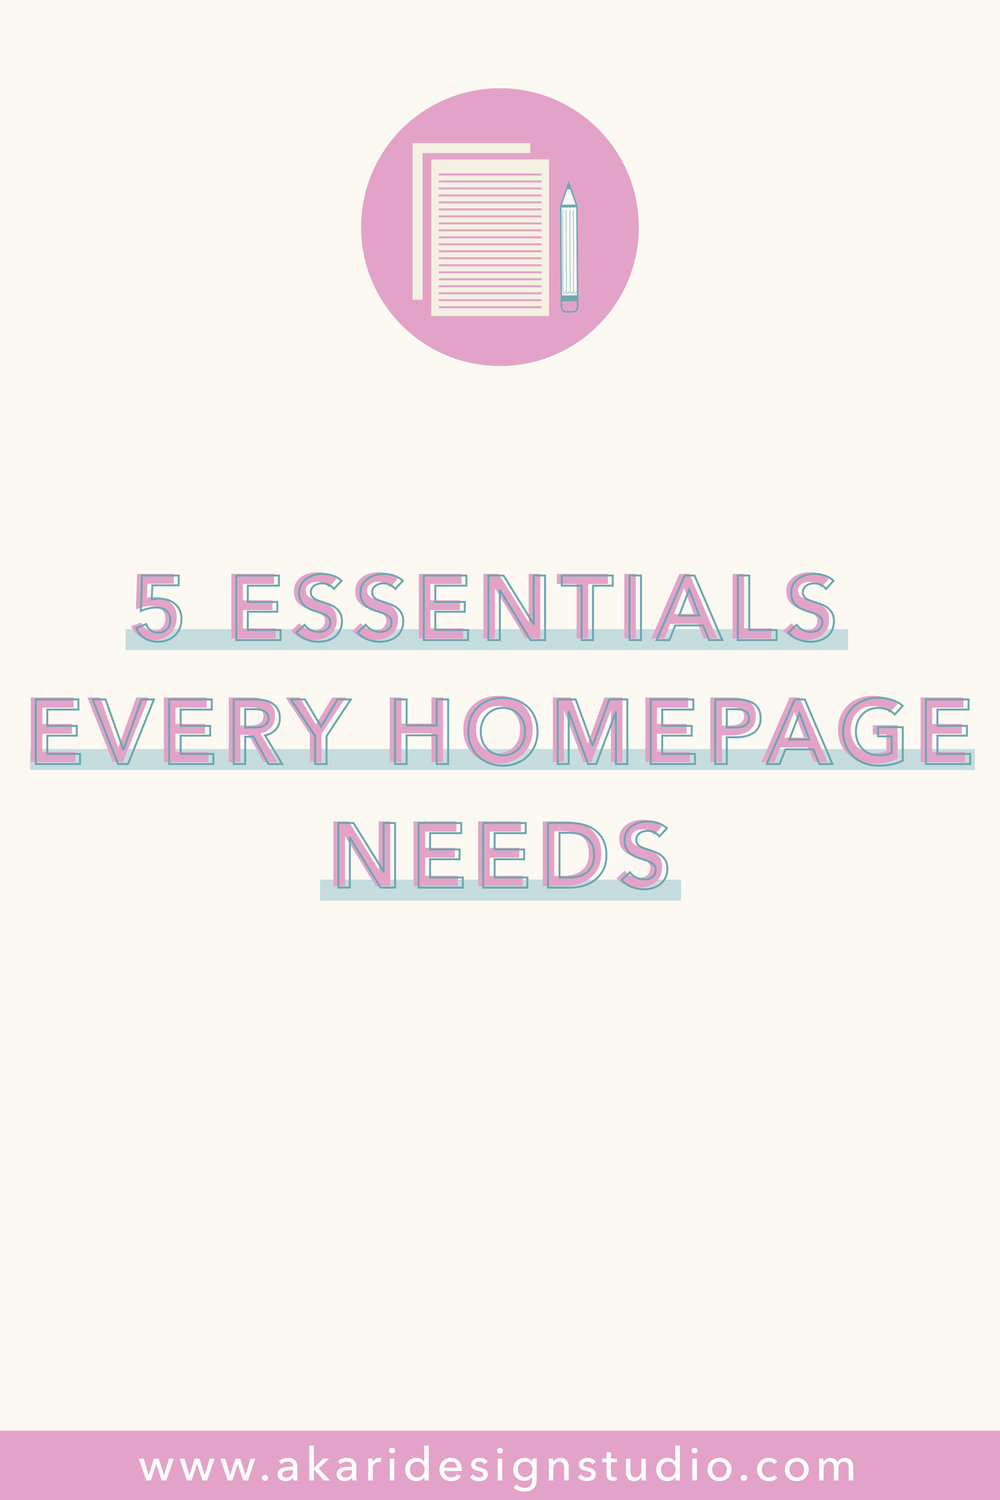 Essential elements of a website homepage. How to create a good homepage.